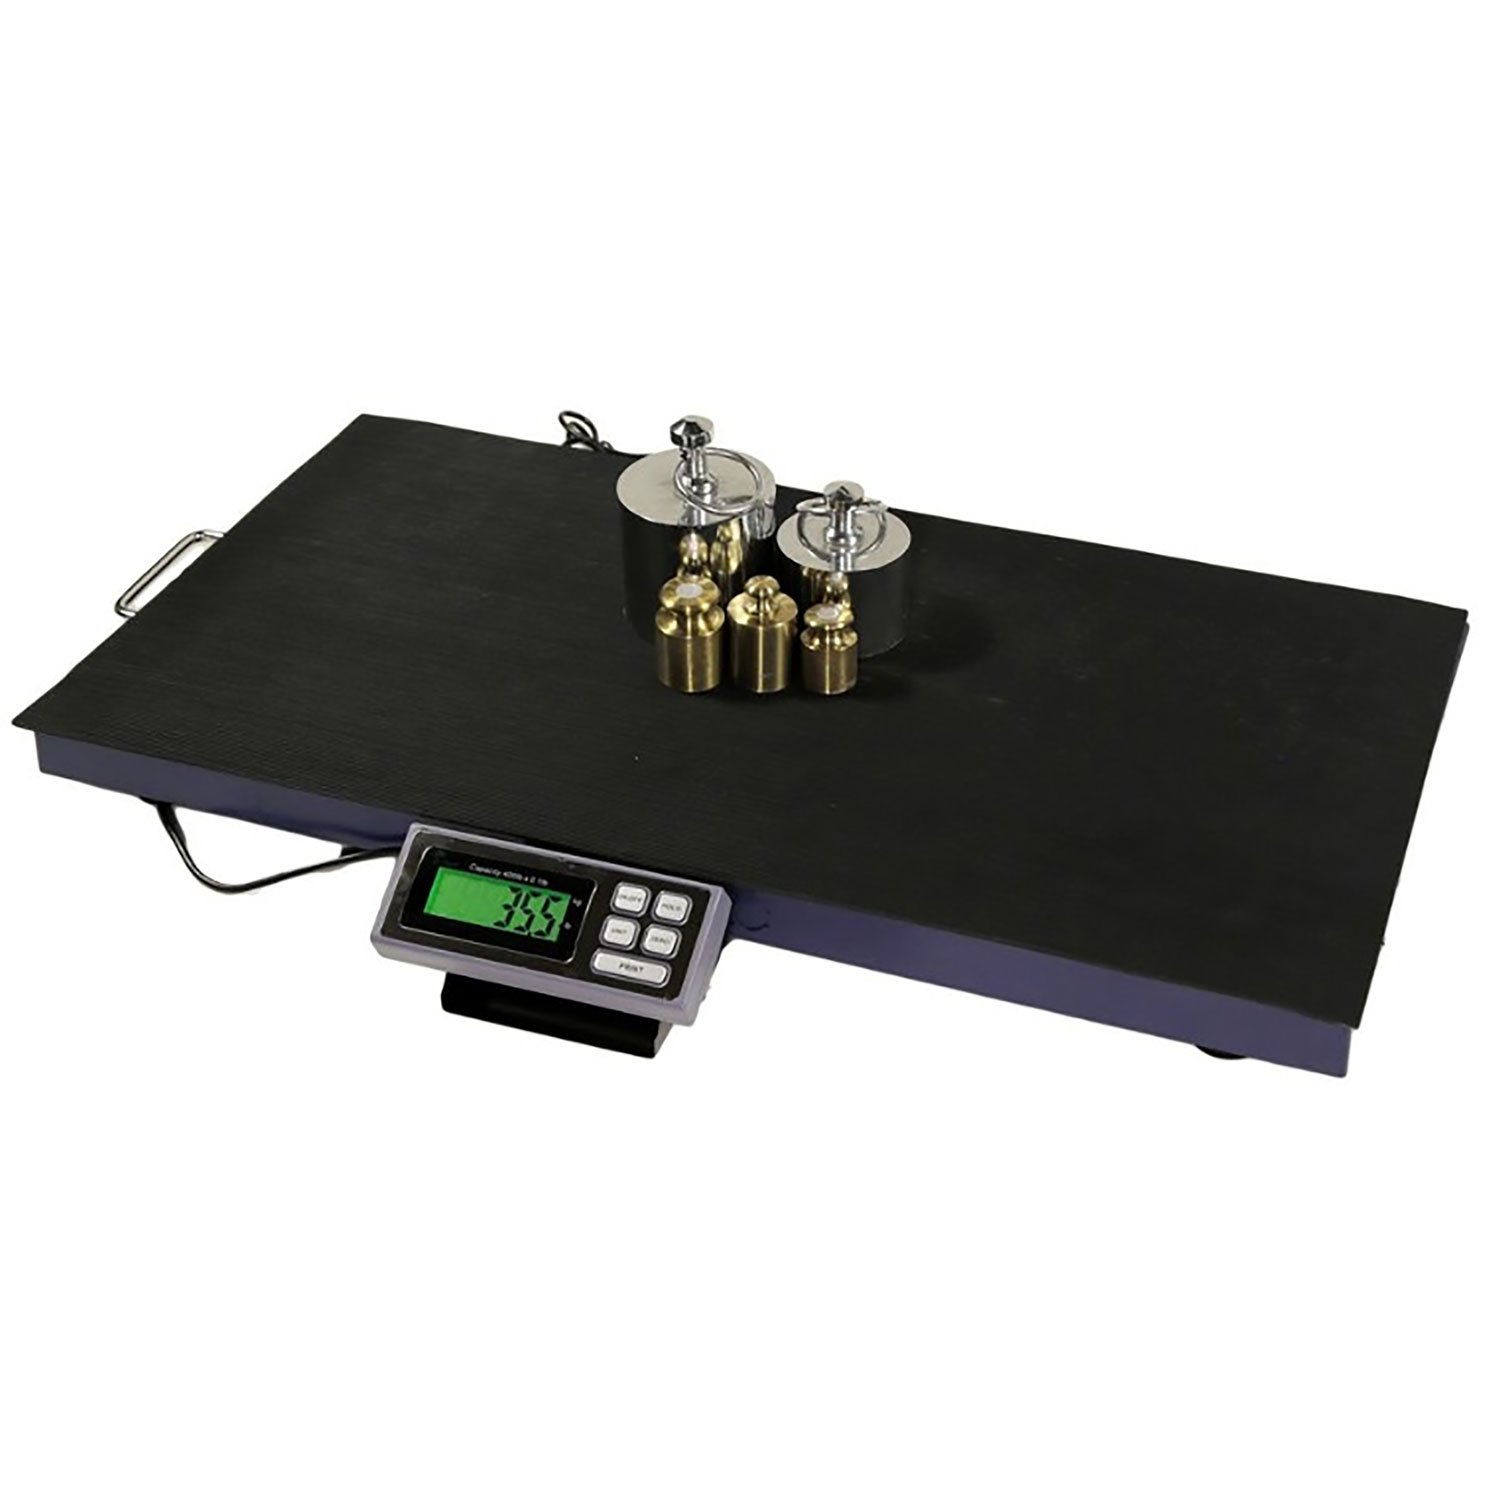 AMSTON SCALES 400 LB x 0.1 LB 38 x 20 Inch Platform Digital Heavy Duty Welded Steel Floor Bench Shipping Scale